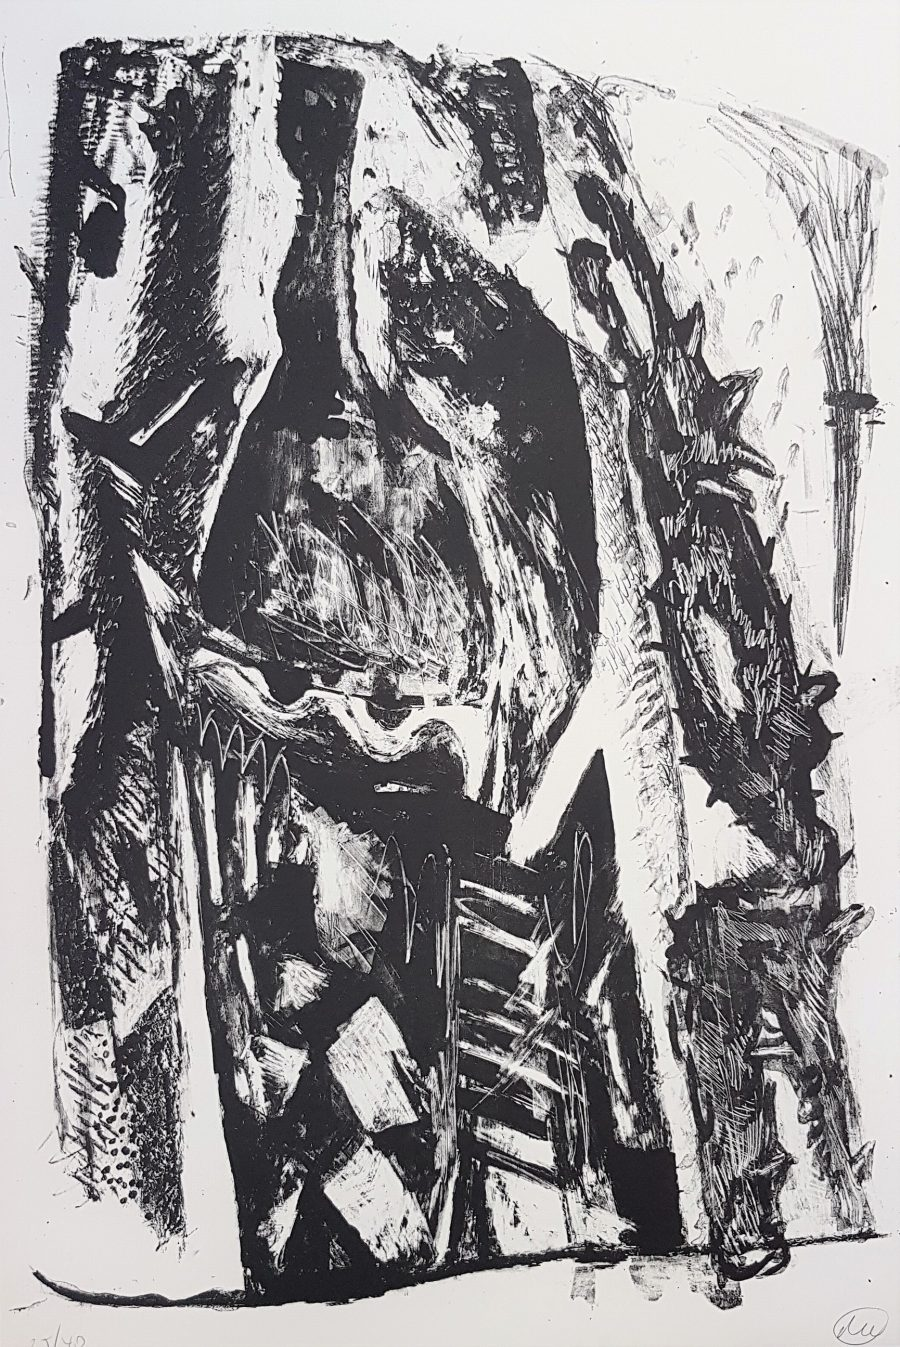 Untitled (Abstract Expressionist Composition